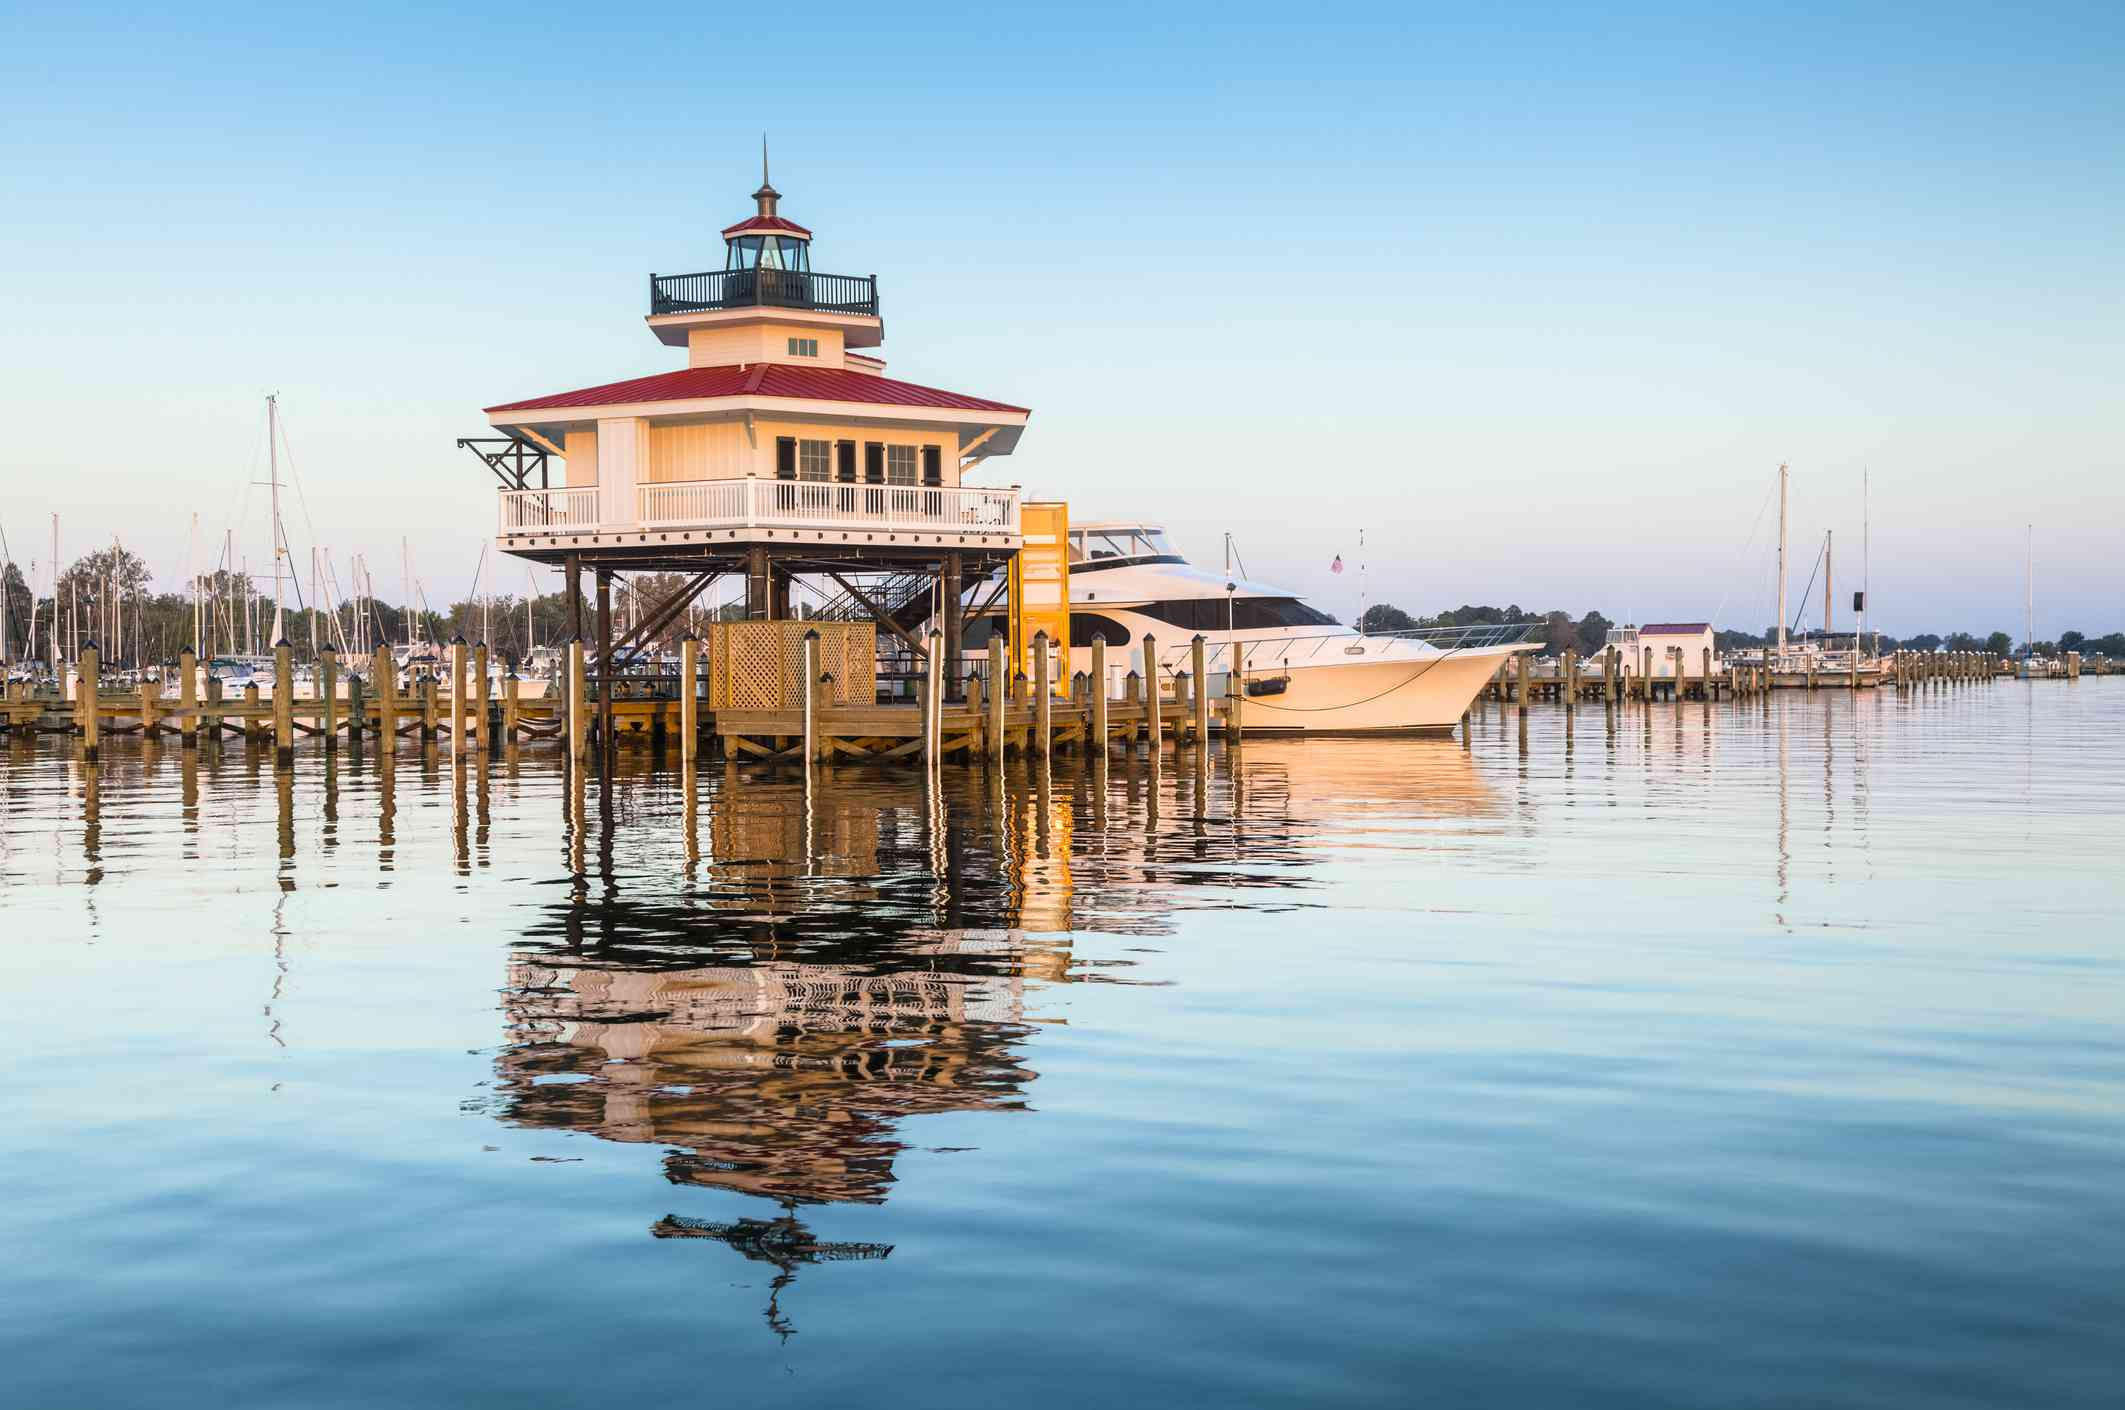 The Choptank River Lighthouse, situated at the end of Pier A at Long Wharf Park in Cambridge, Maryland,